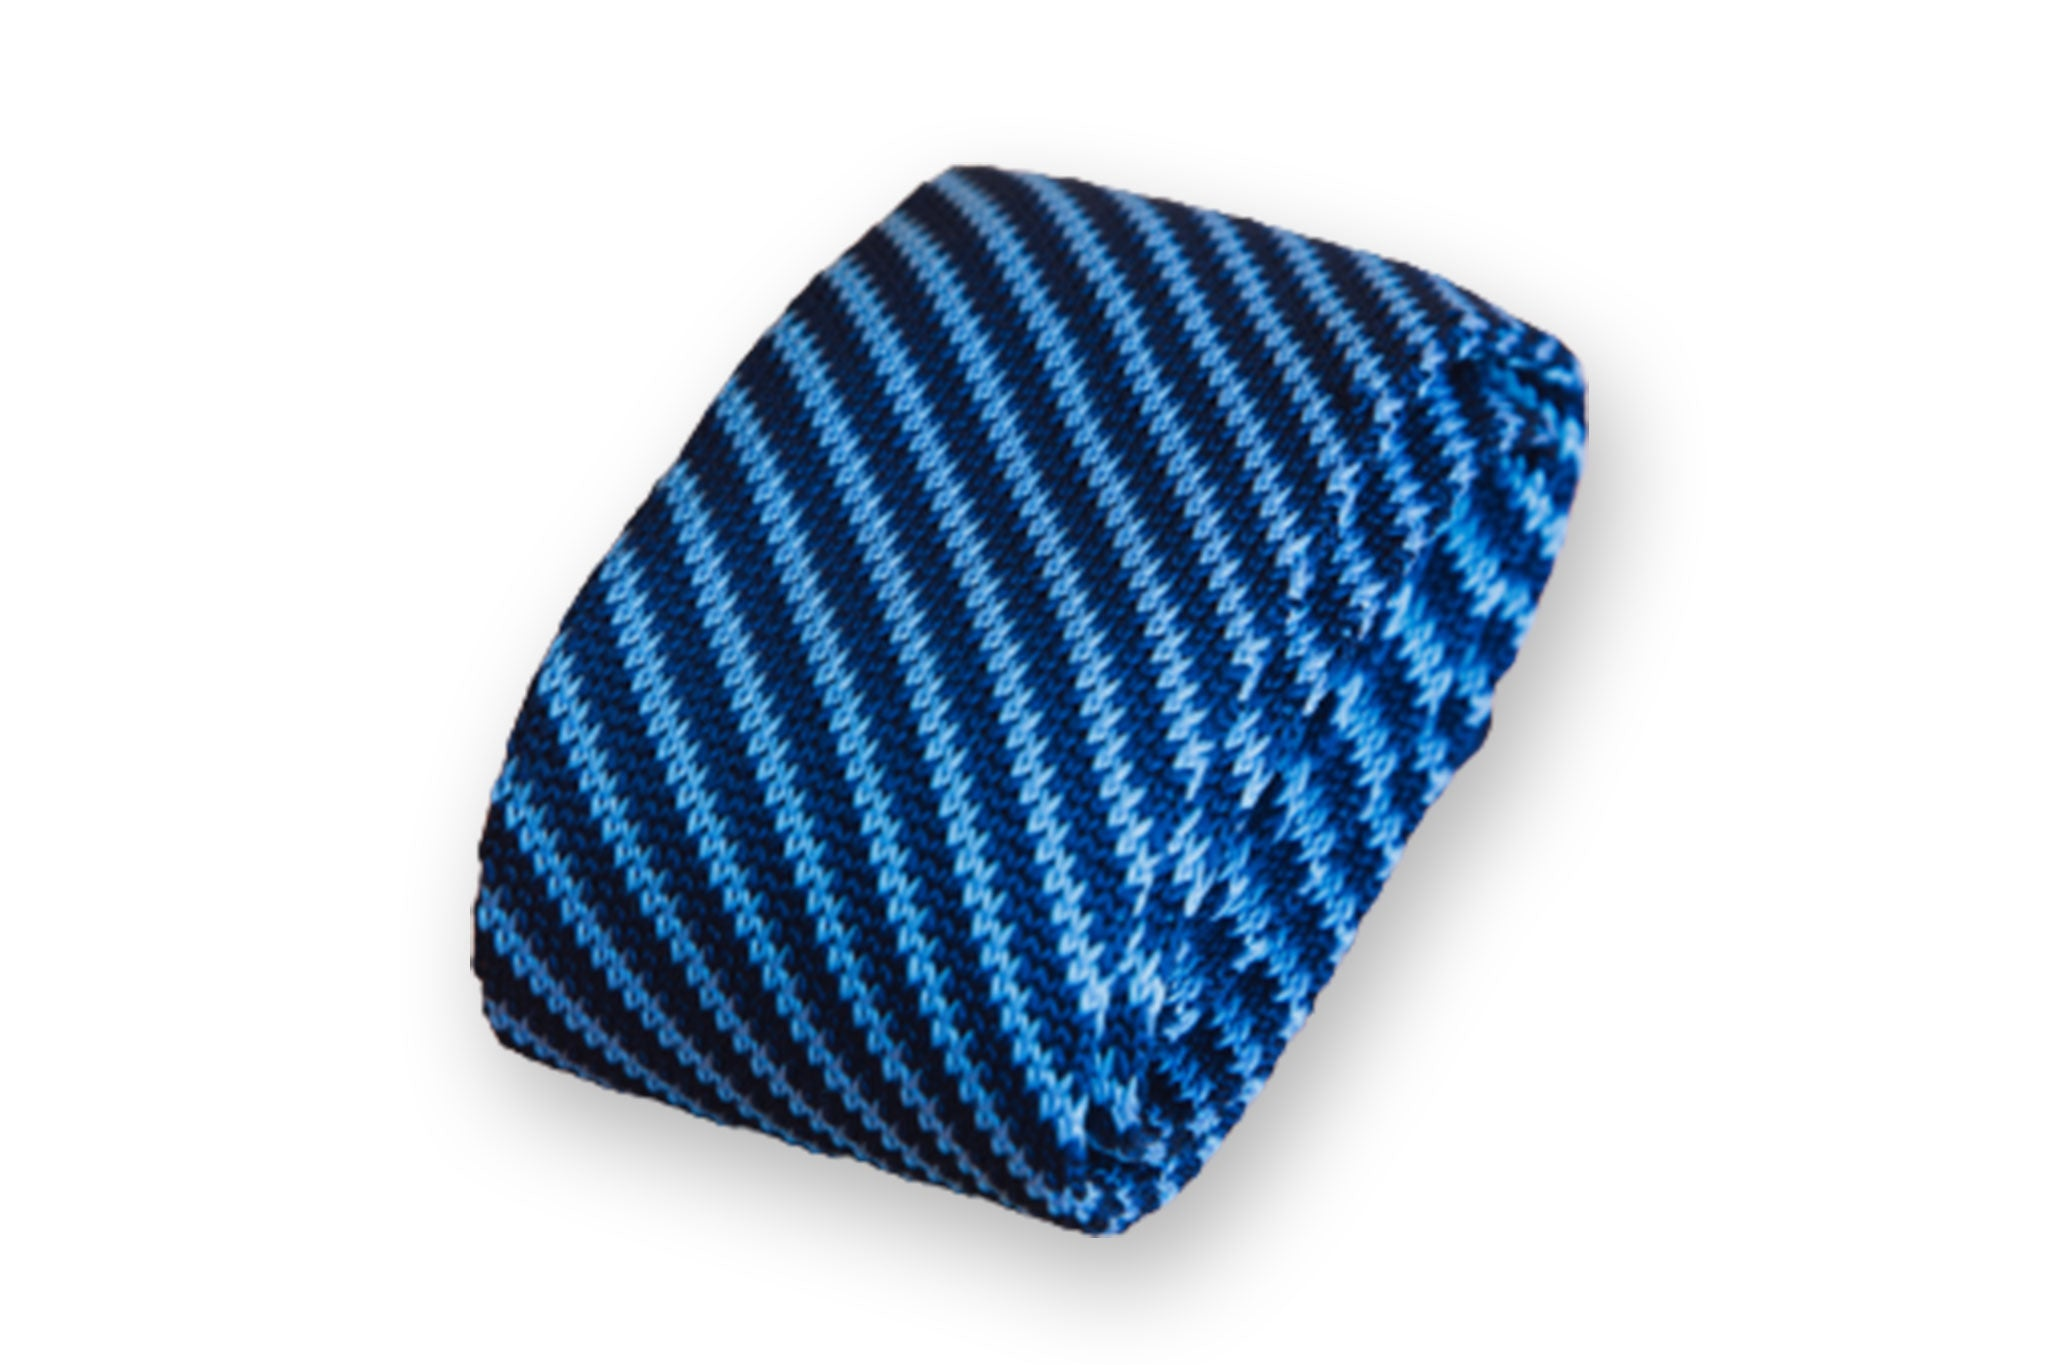 gentlemens-choice-blue-wool-knit-tie-01